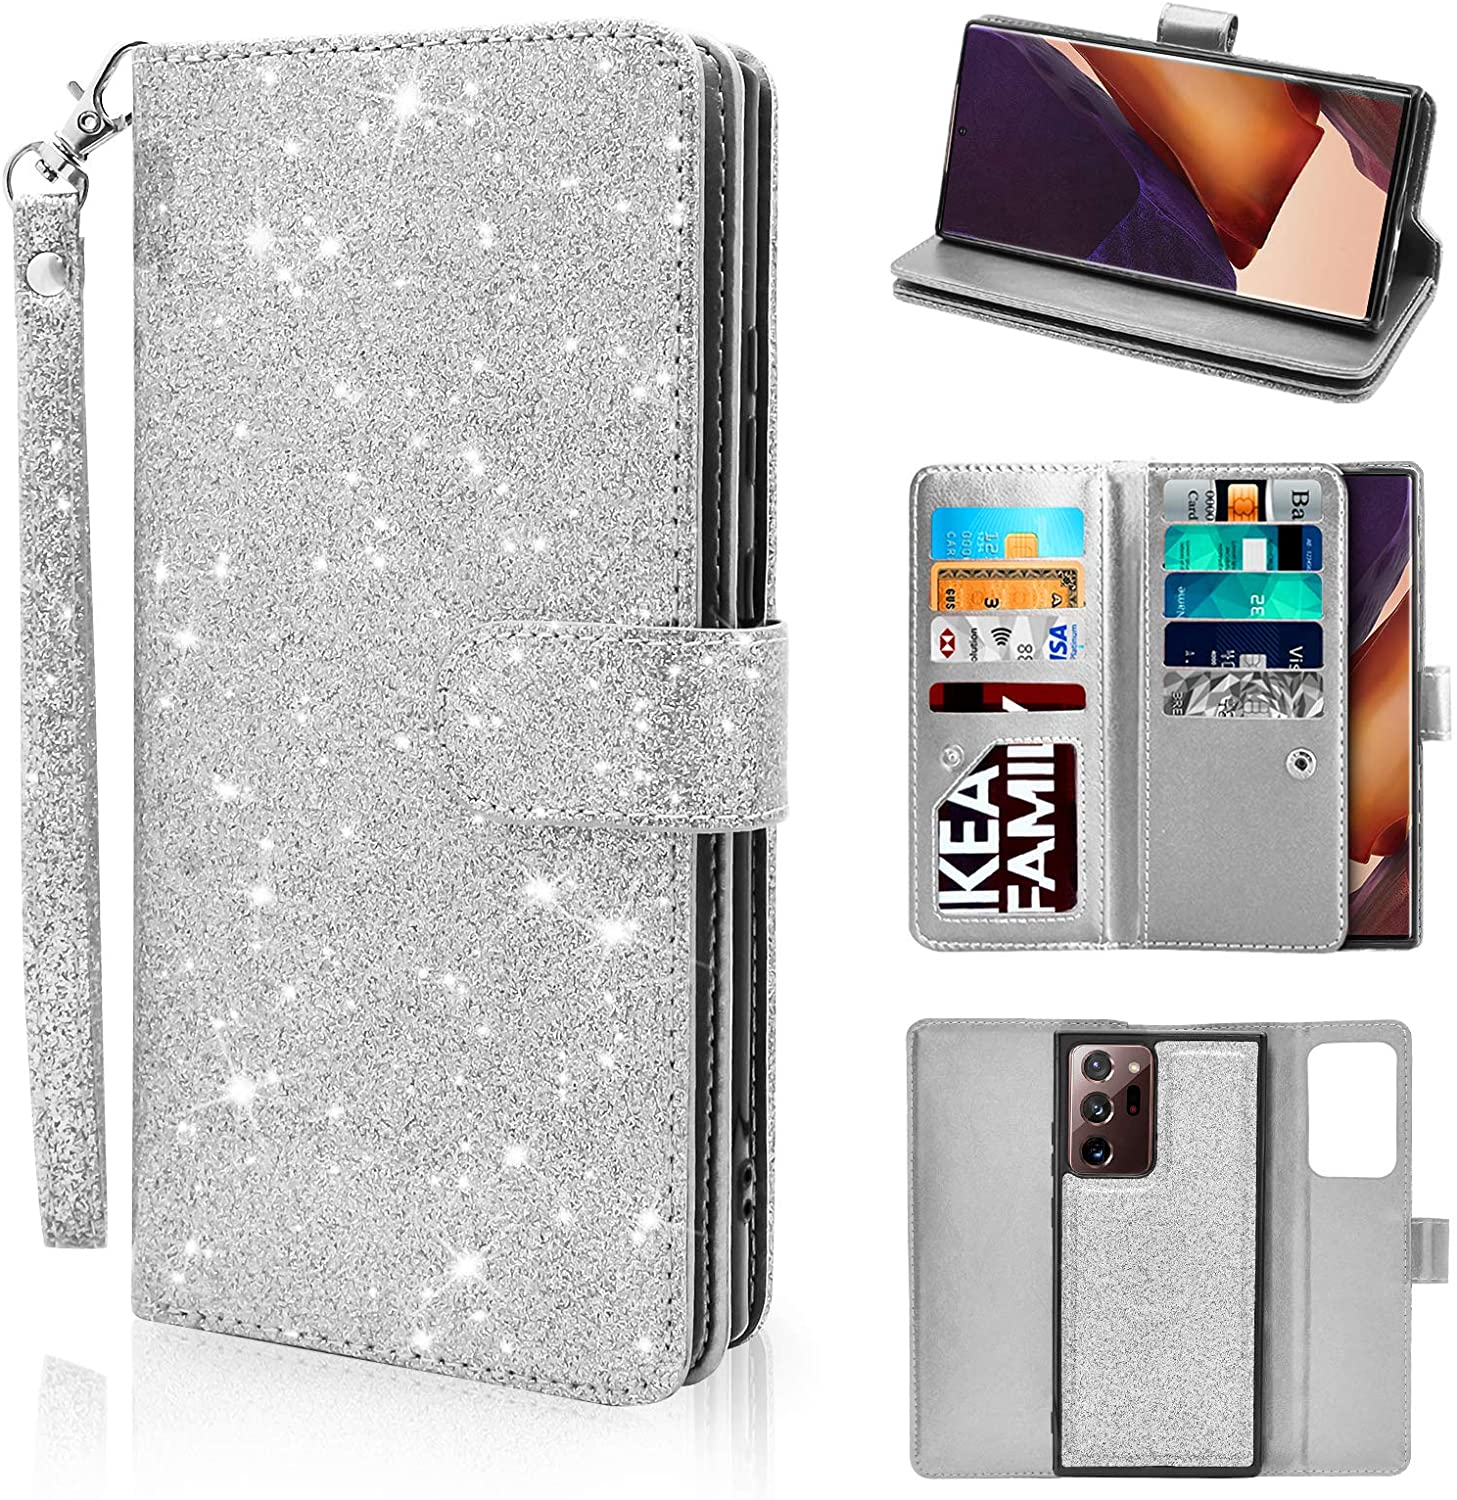 Newseego Compatible Samsung Galaxy Note 20 Ultra Leather Case, Glitter Faux PU Leather Magnetic Closure Multi-Credit Card Slot Cash Holder Detachable 2 in 1 Wallet Cover with Wrist Strap- Silver